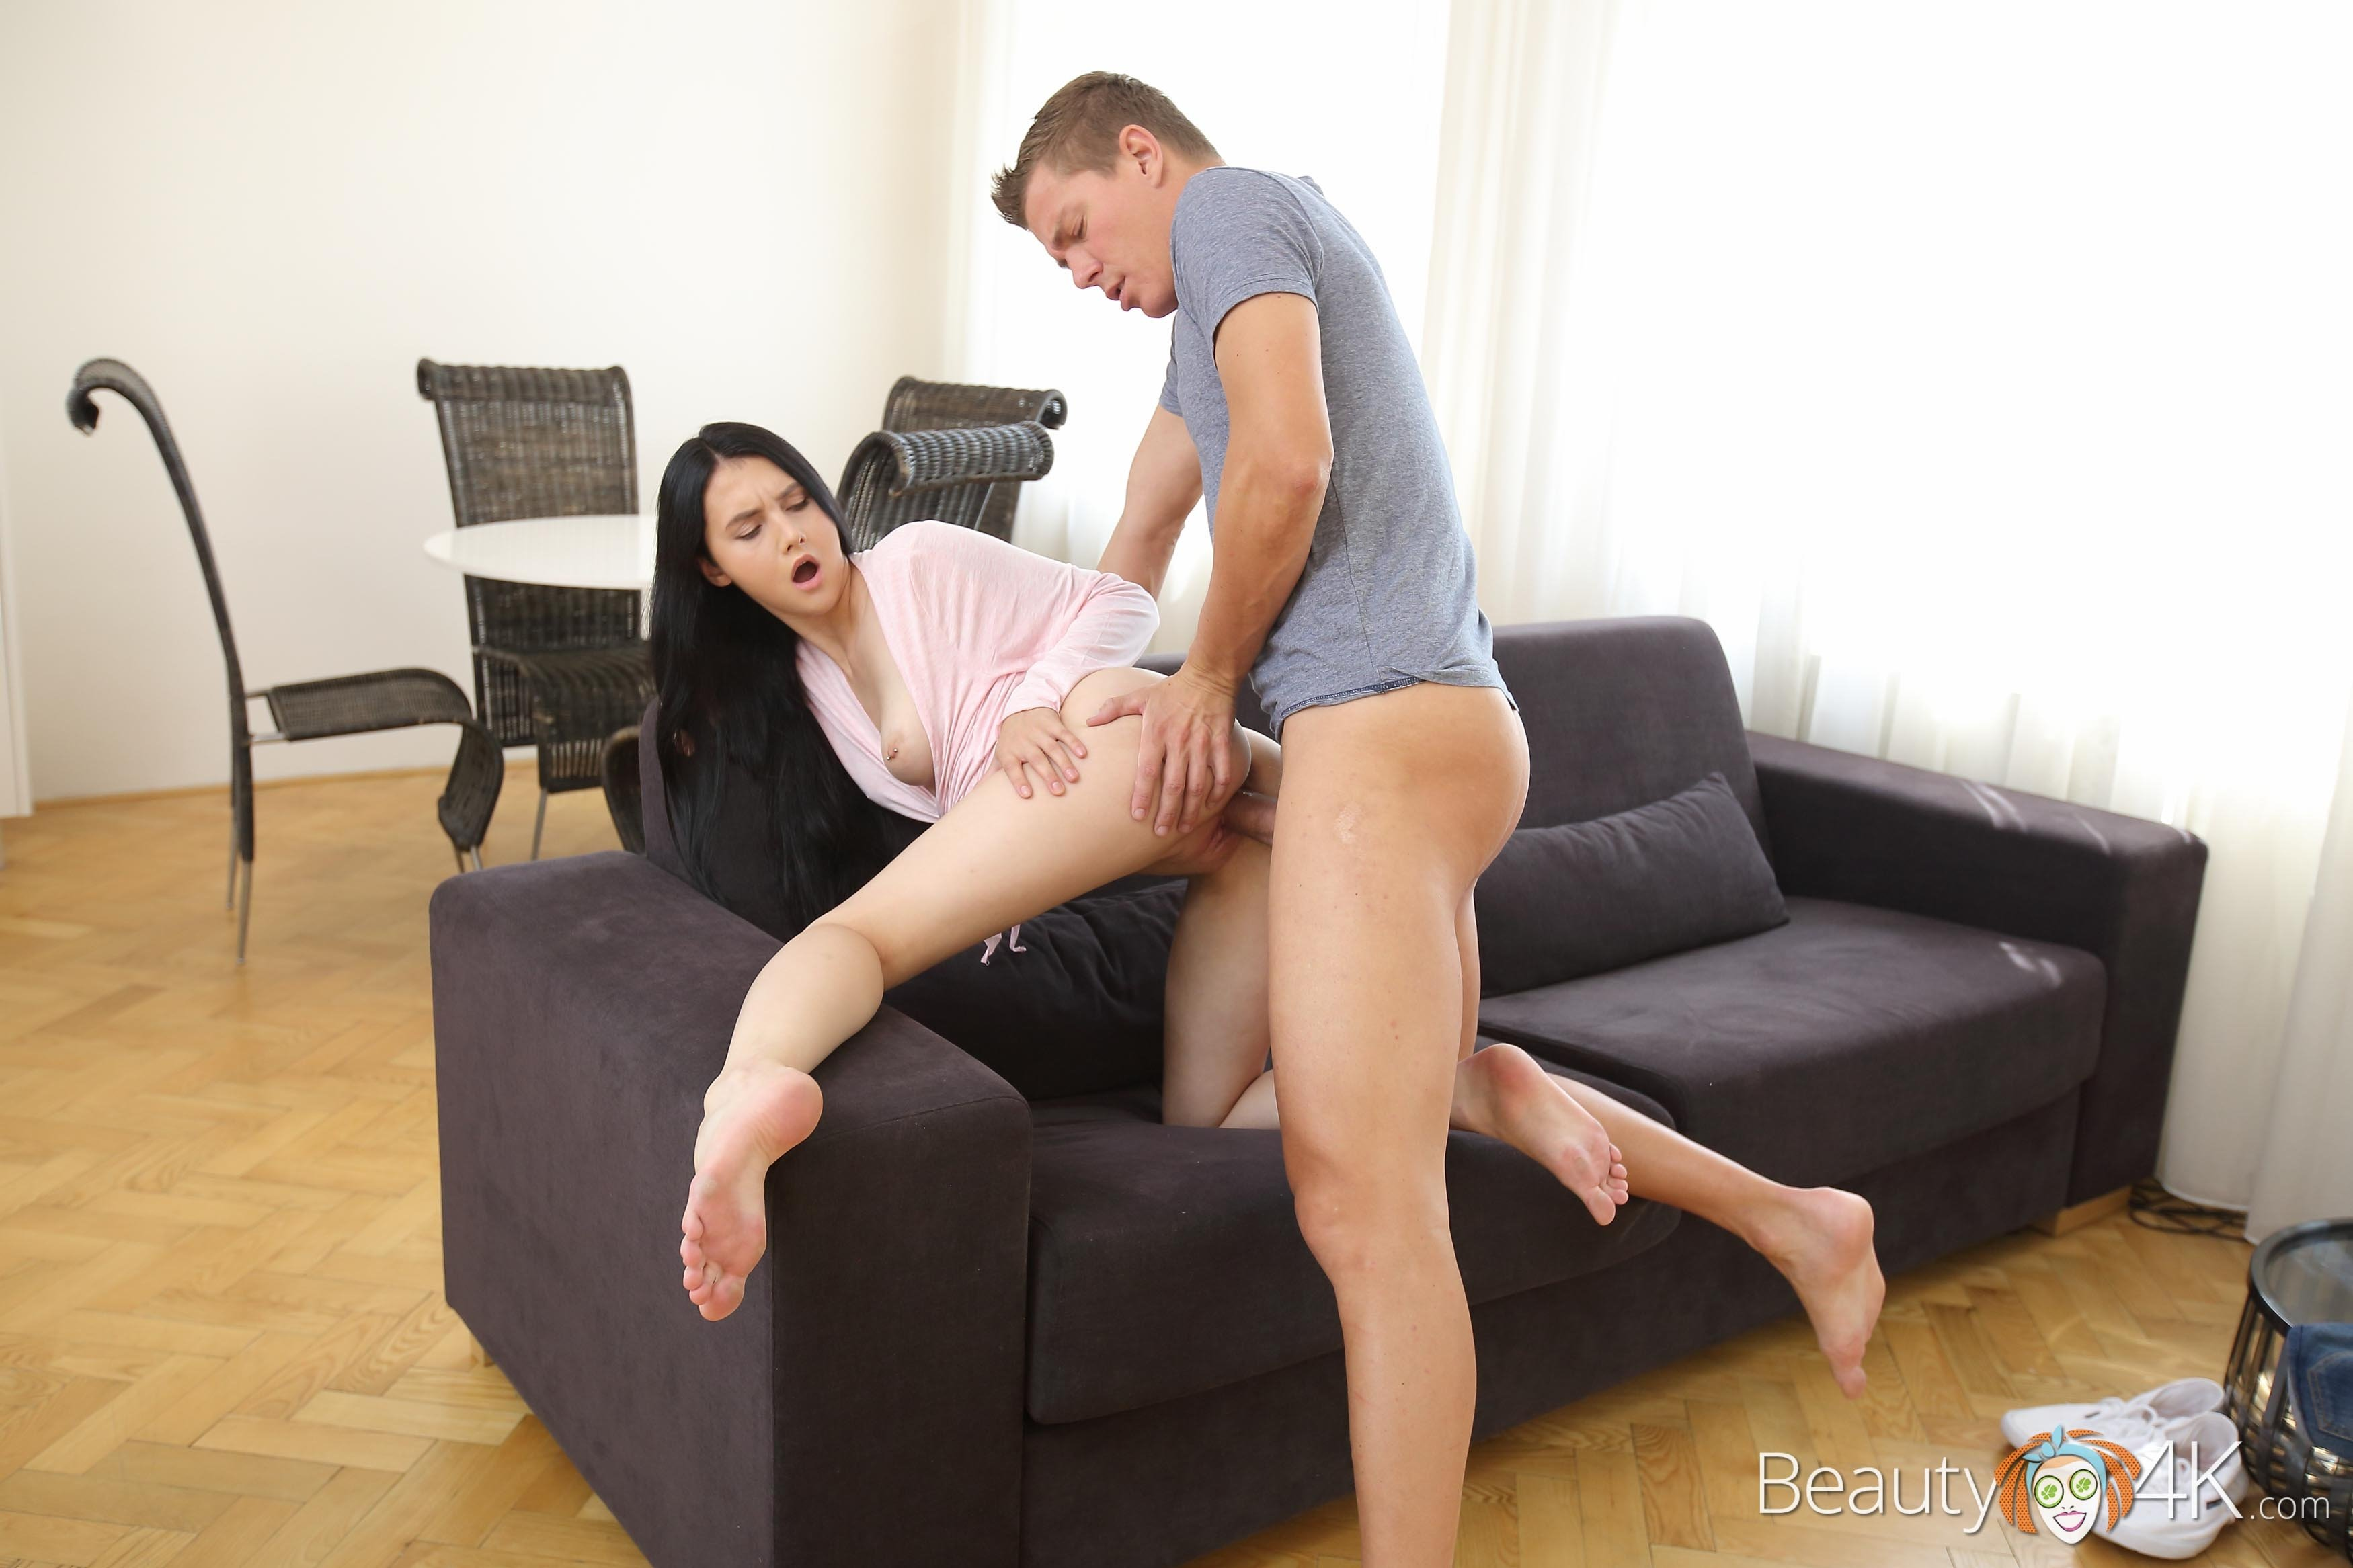 Audrey bitoni in i have a wife